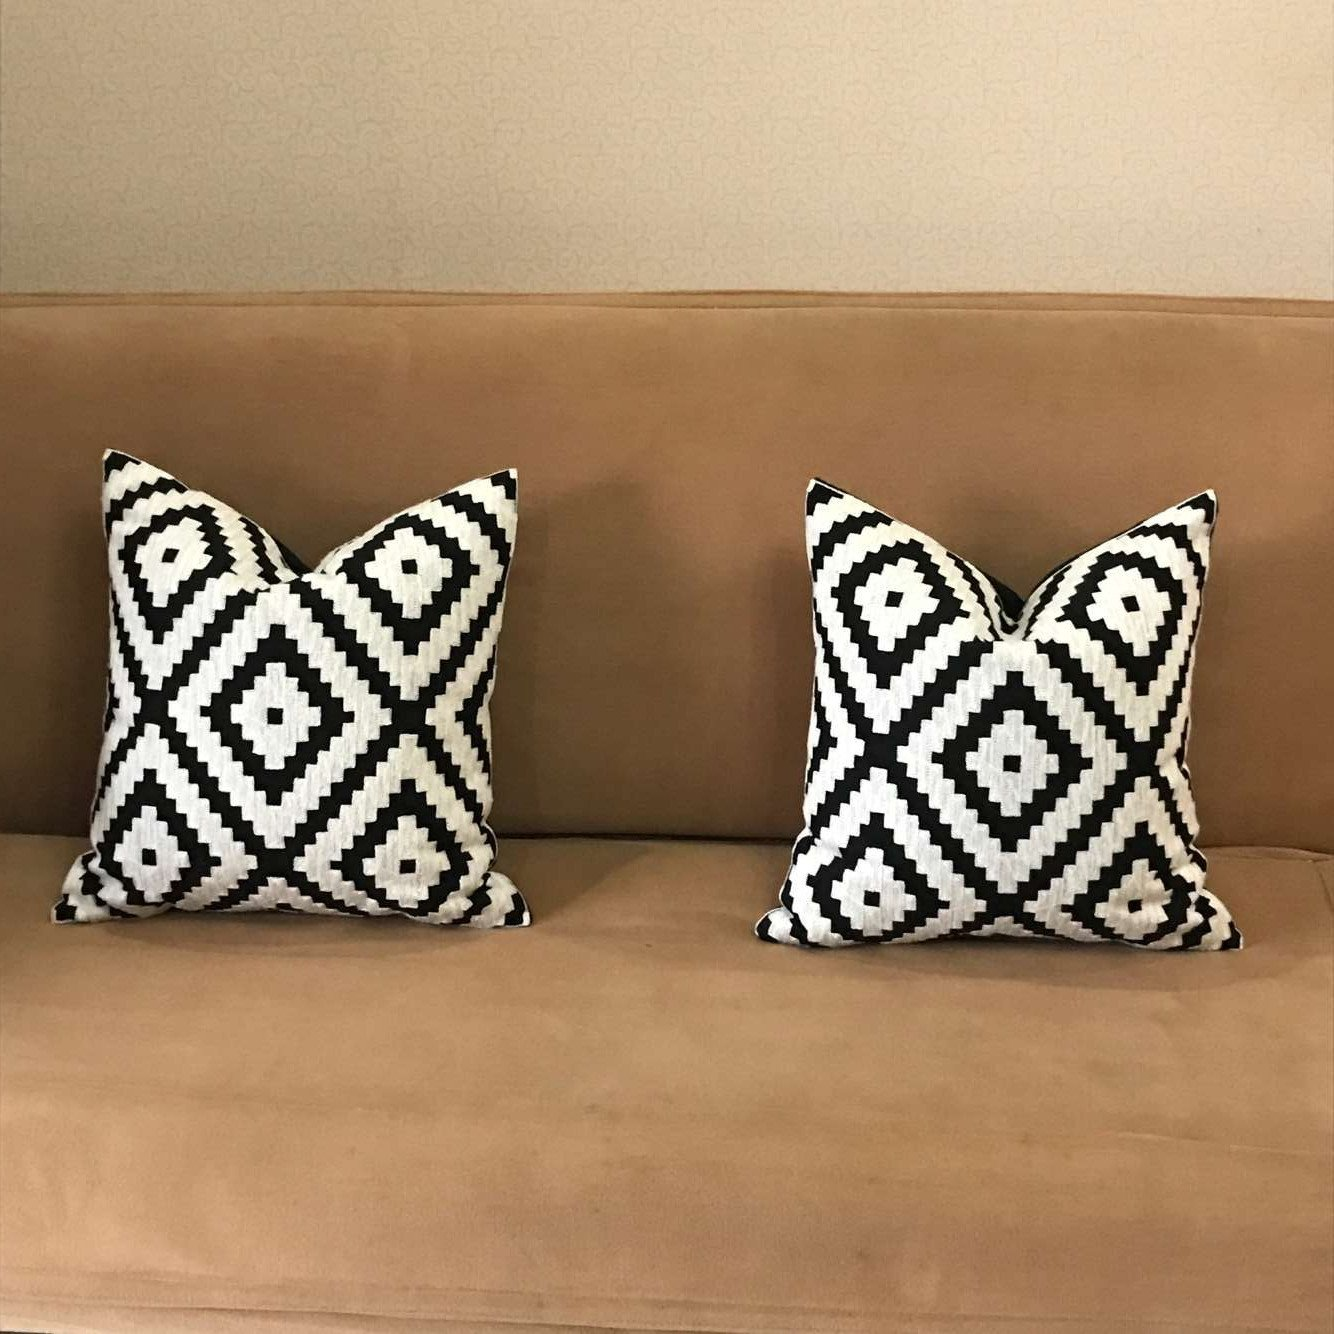 1PC Plain Jann Cotton Embroidery Throw Pillow Cover Premium Zipper Pillow Cover Decorative for Living Room 18x18 Inches Cushion Cover